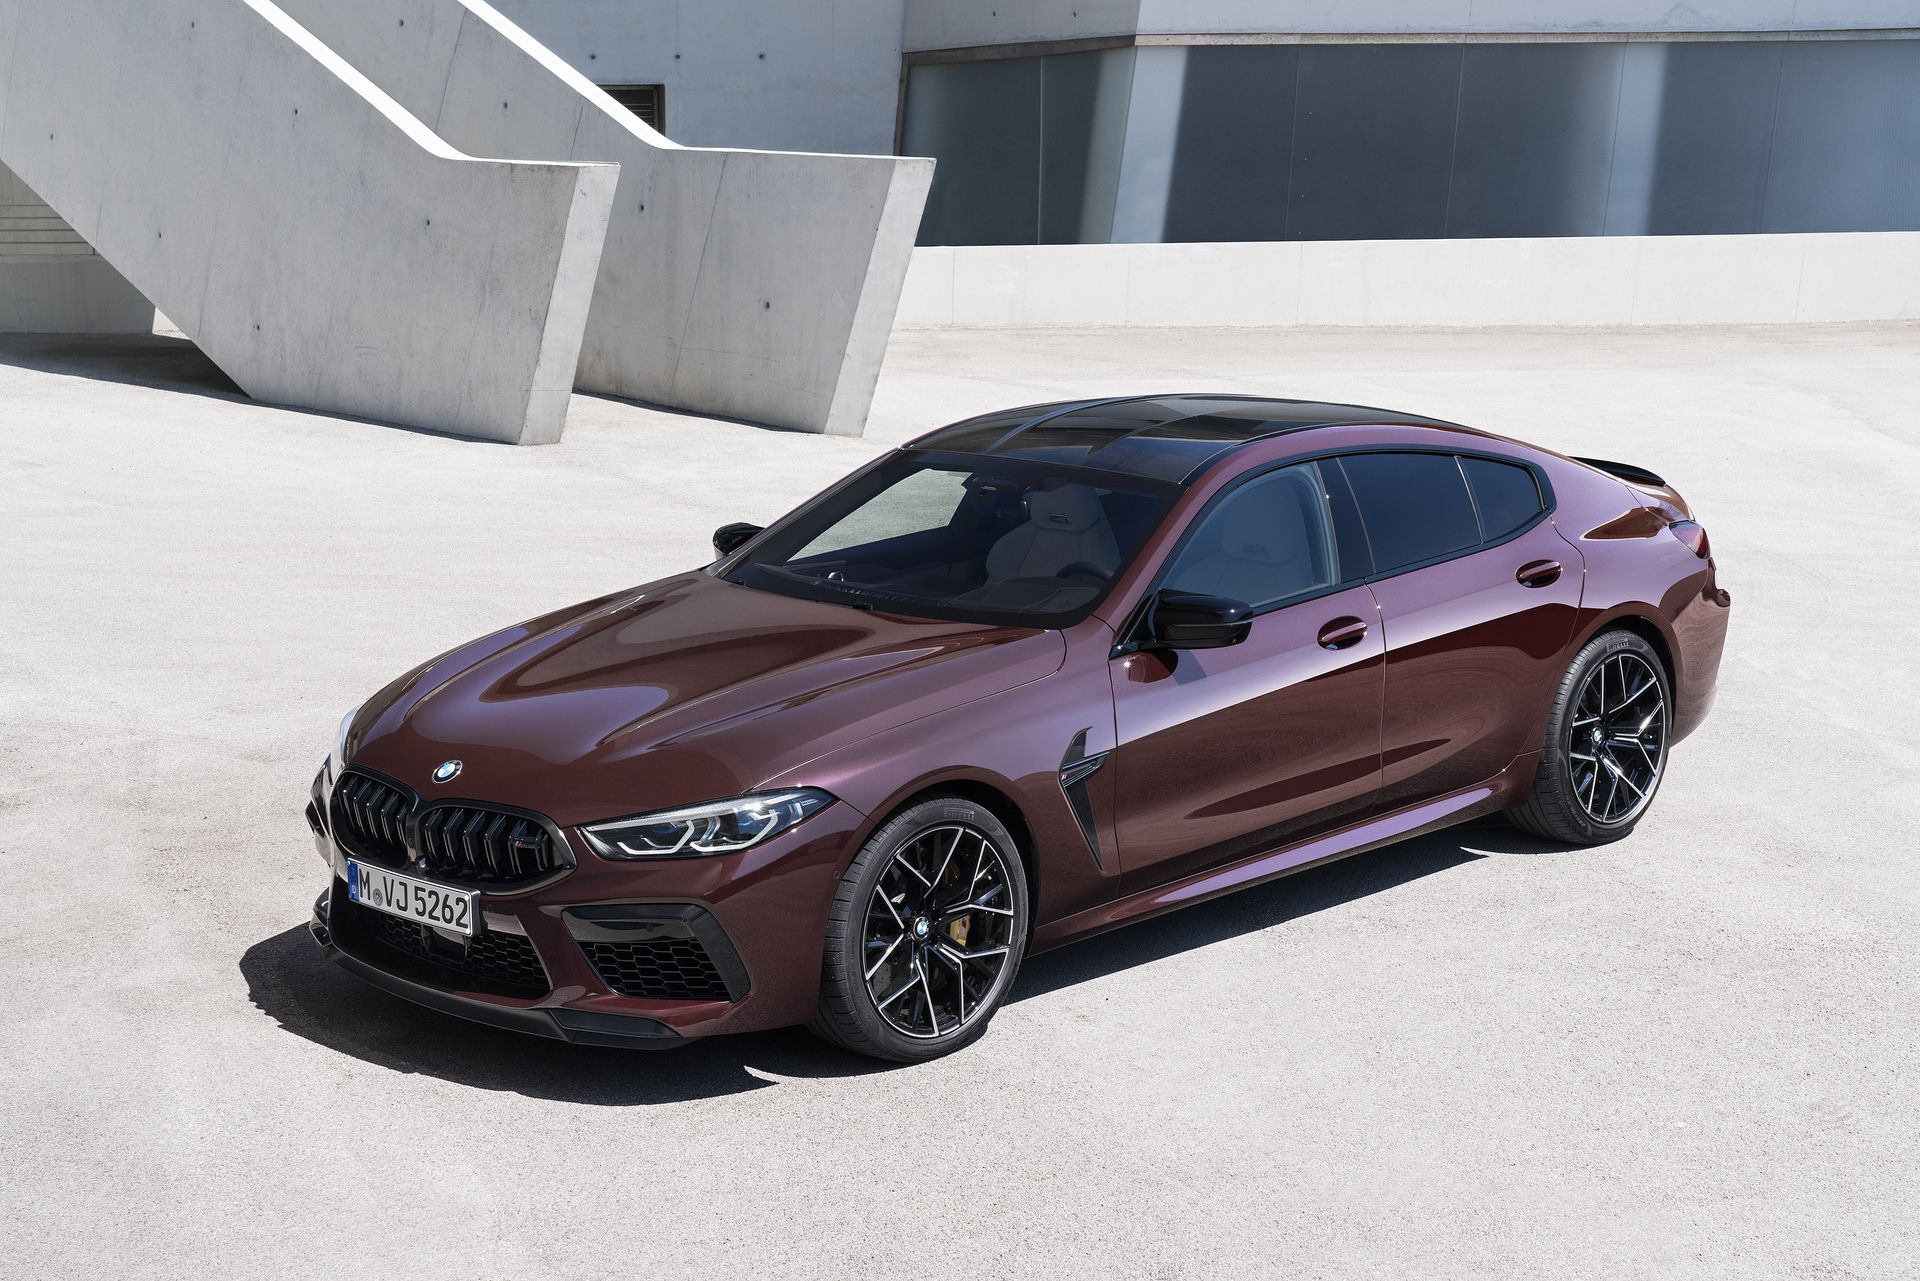 2019 La Auto Show Bmw M2 Cs M8 Gran Coupe 2 Series Gran Coupe New Bmw Gran Coupe Bmw